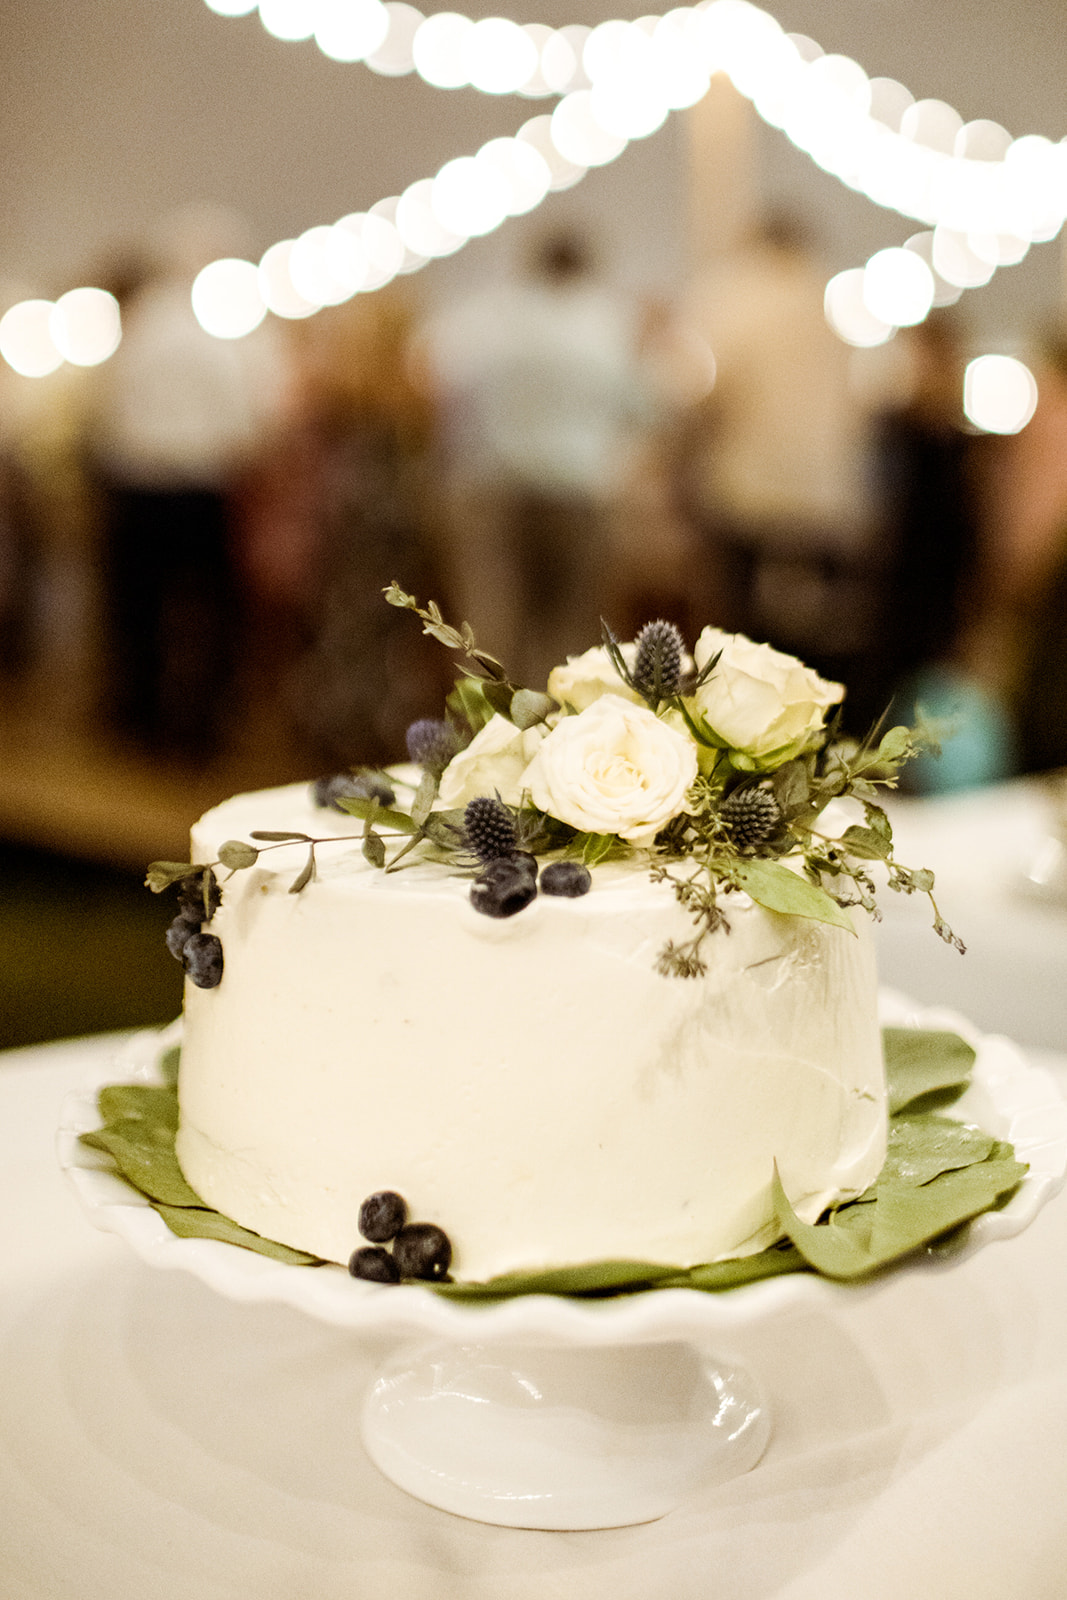 Simple white cake with greenery and blueberries - Pearl Weddings & Events